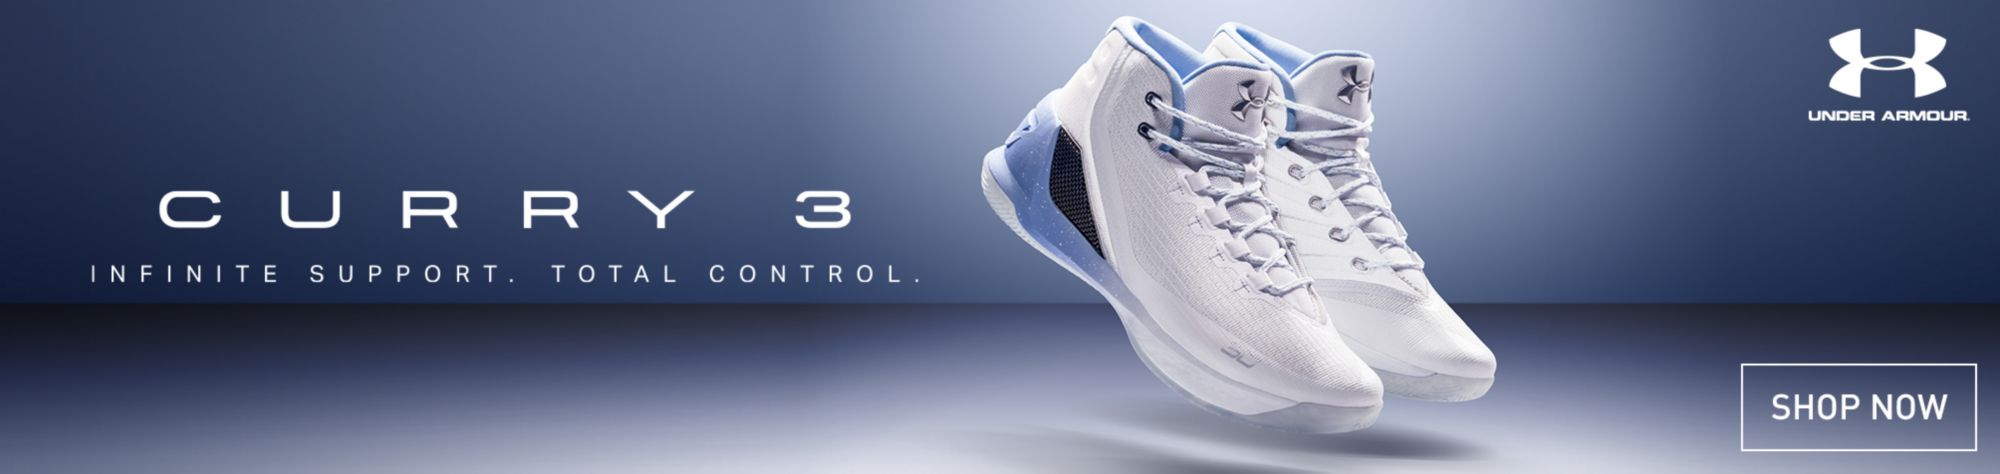 Curry 3 Launch